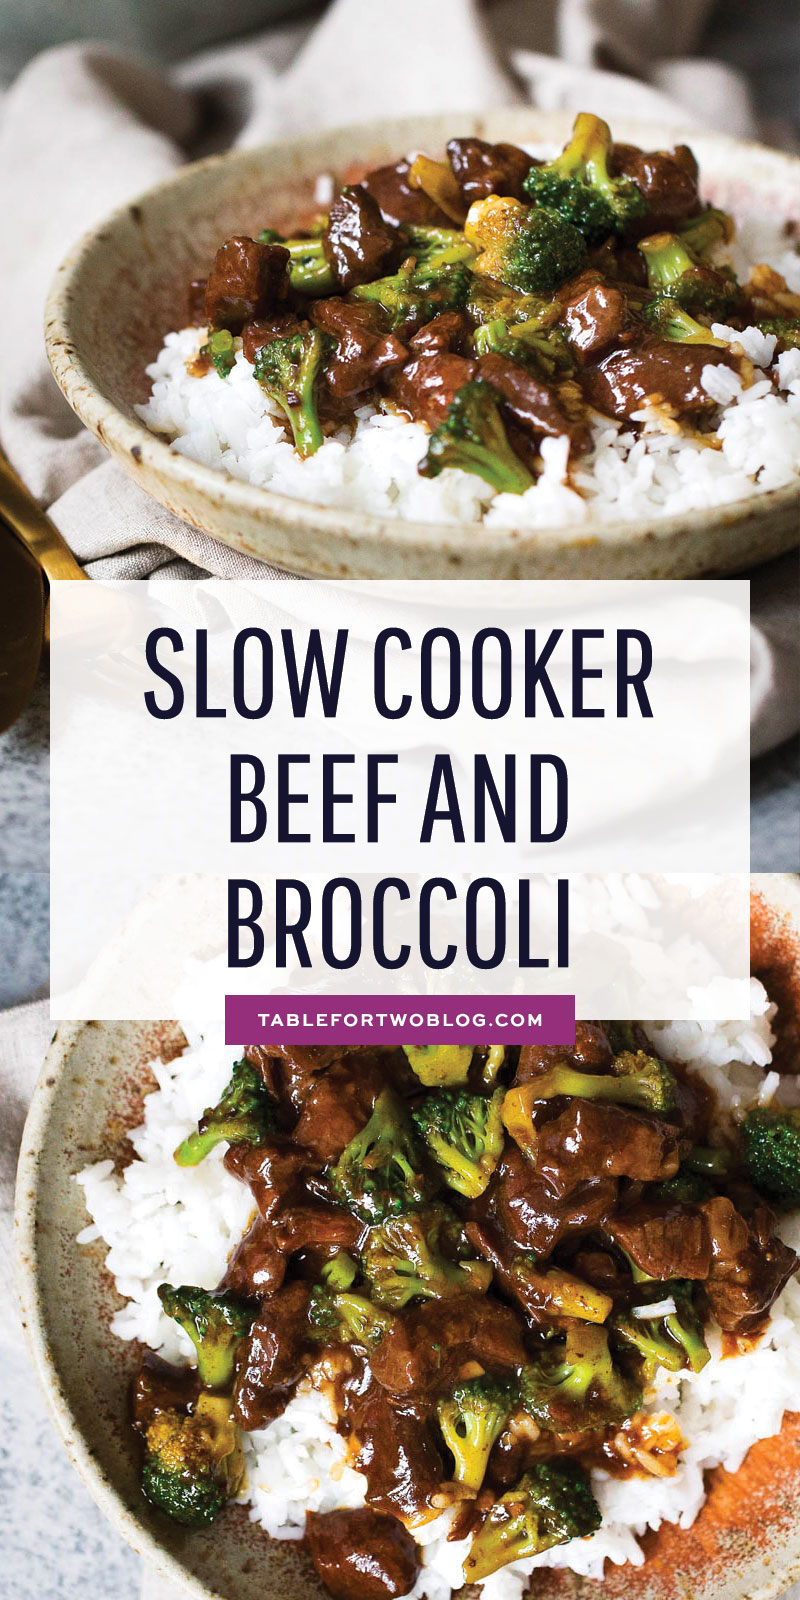 Slow cooker beef and broccoli is easy to make at home and such a warm comforting meal to have in a big bowl of rice! Much better than calling take-out; simply whip out your slow cooker and make this beef and broccoli at home! #slowcooker #beefandbroccoli #takeout #crockpot